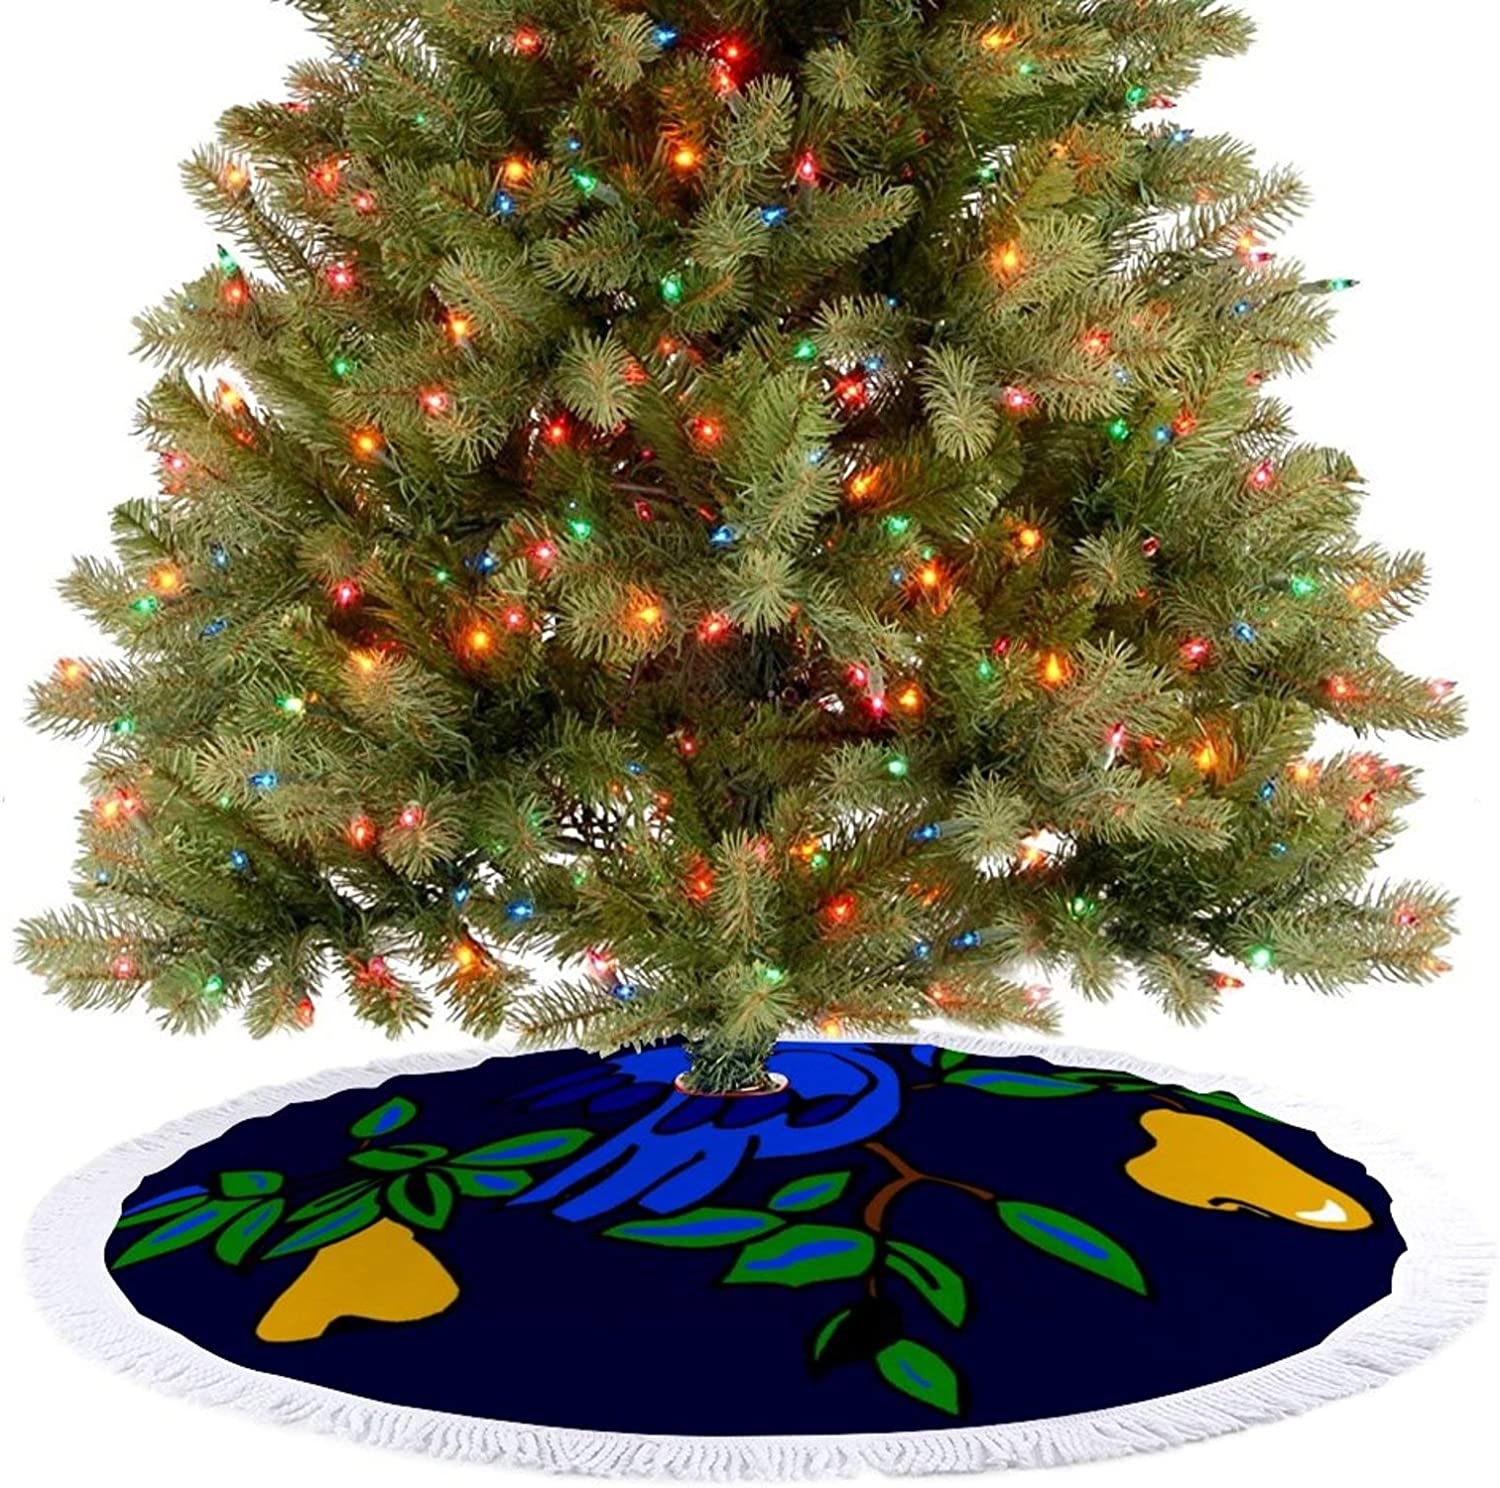 Amidaky Partridge in A Pear Tree Christmas Tree Skirt for Christmas Holiday Party Decoration Indoor and Outdoor 36''×36''